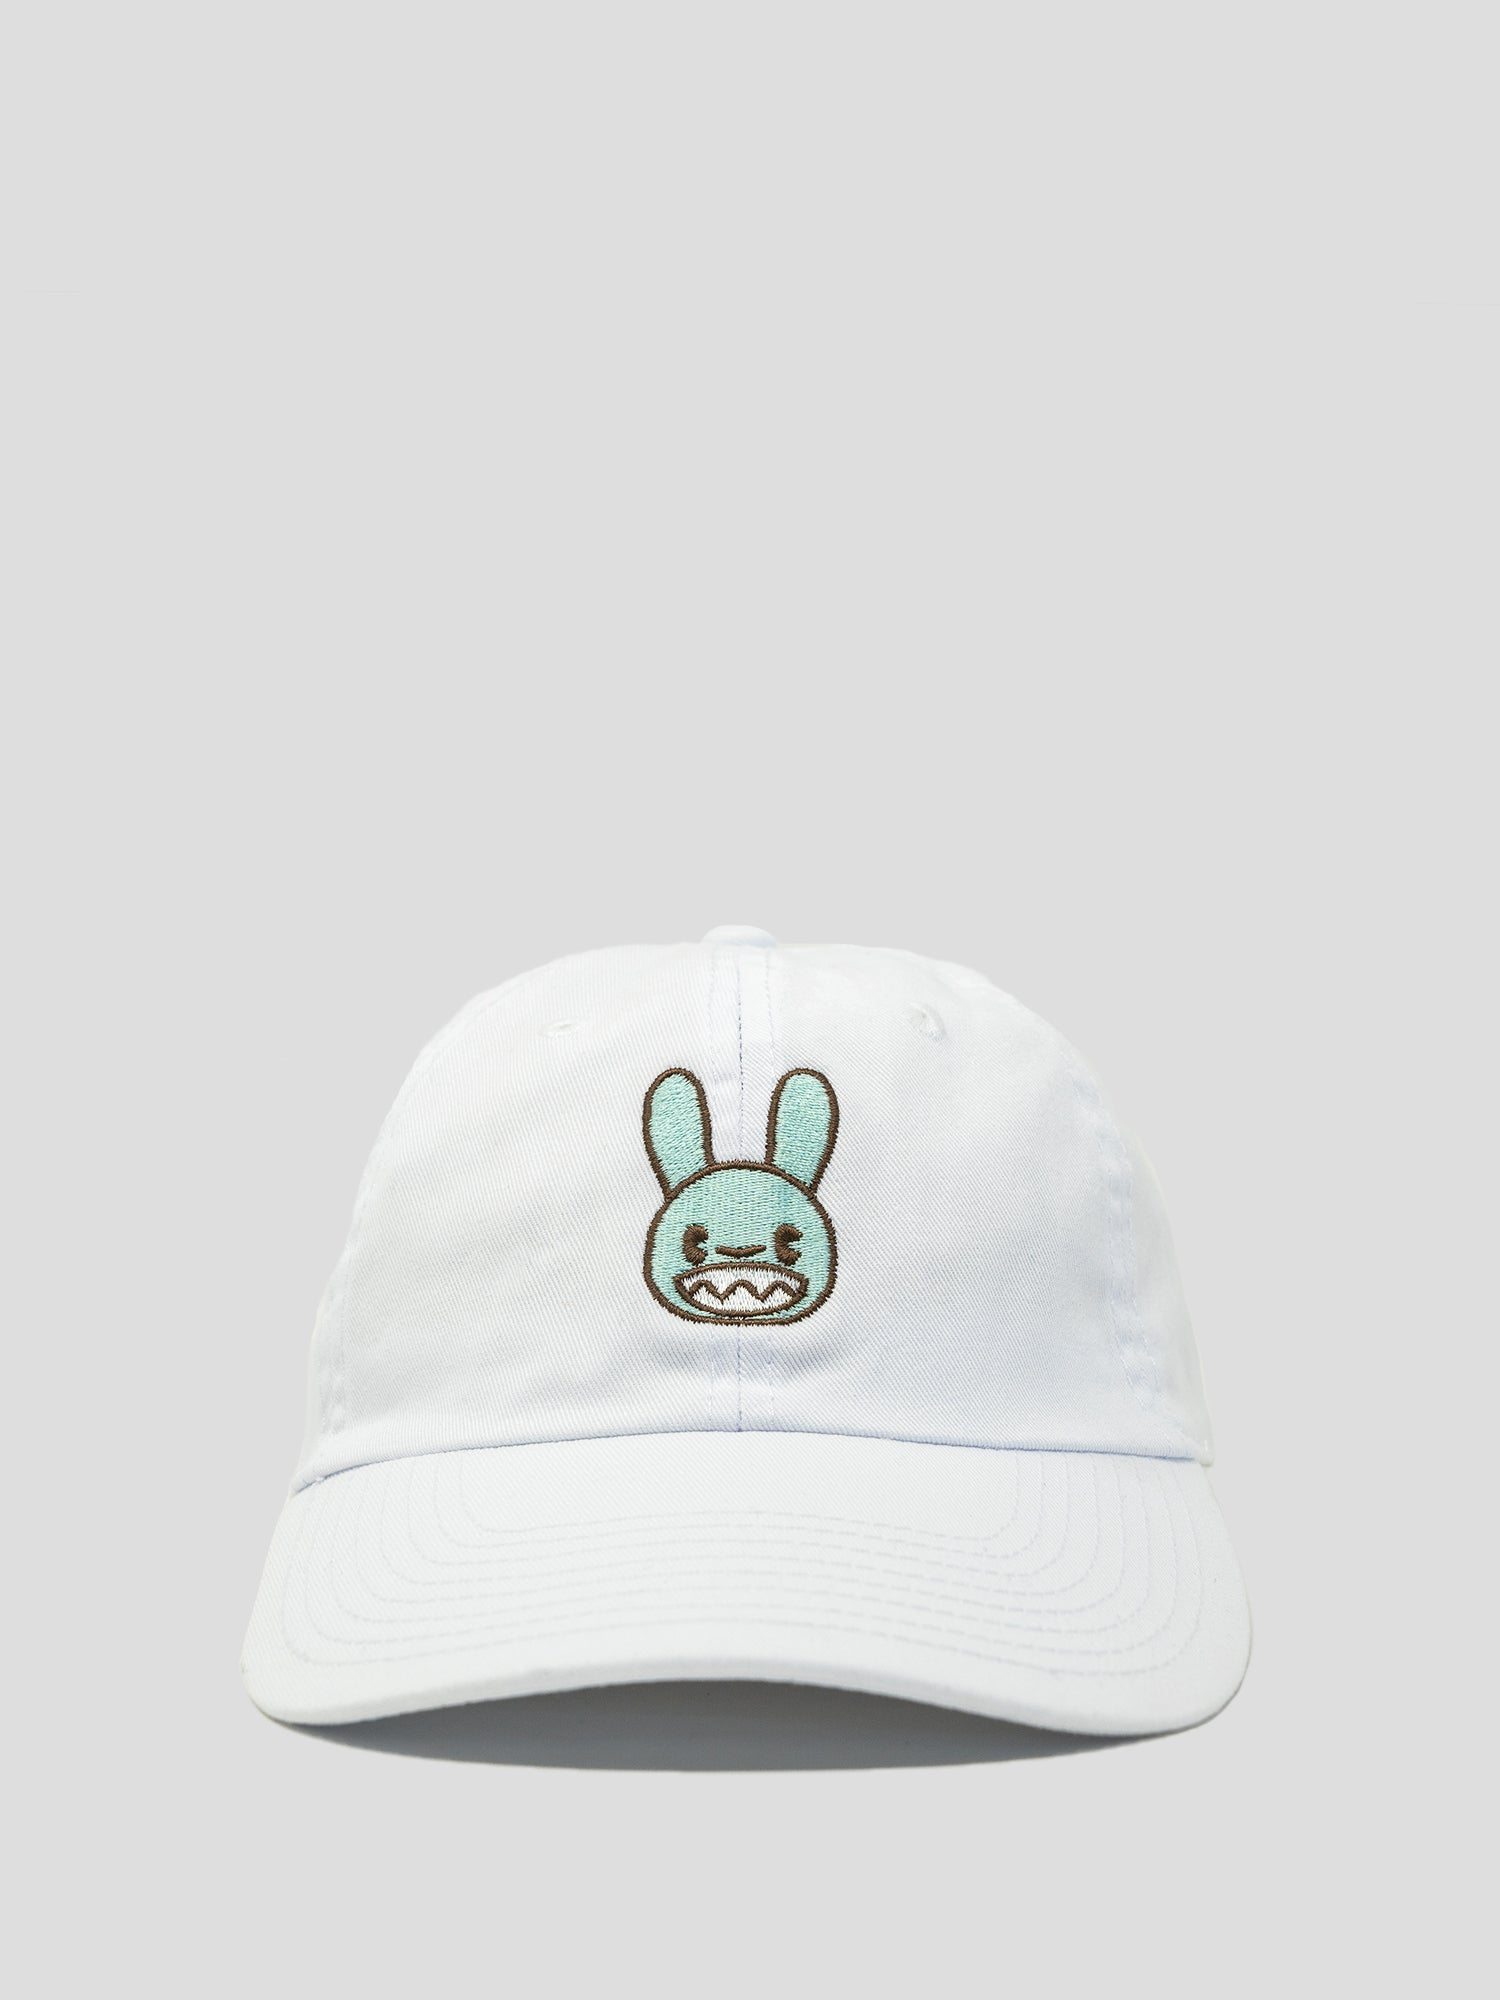 Lil' Helper Guggimon Cap - Unisex [SHIPS MAY 2020]